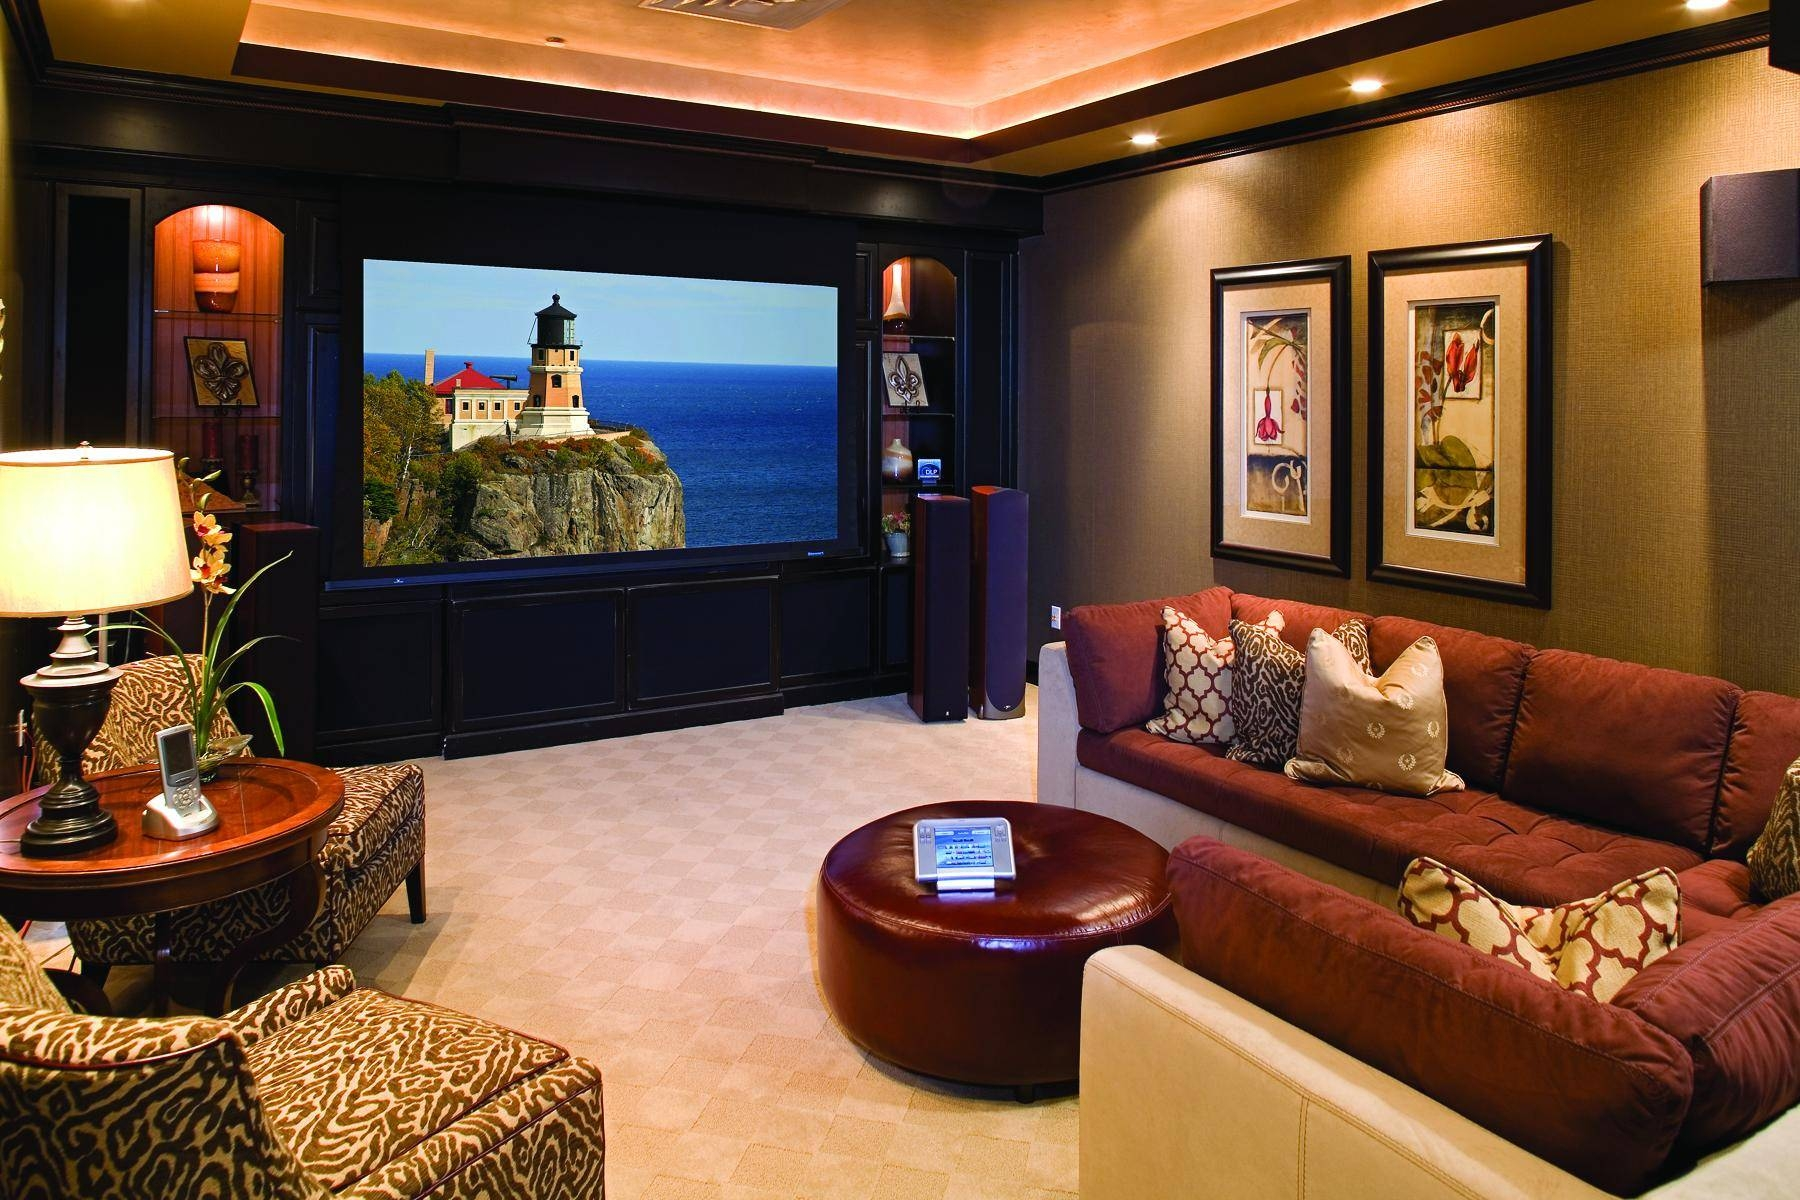 Movie Poster Wall Art Glass Coffee Table Basement Home Theater Intended For Most Popular Home Theater Wall Art (View 16 of 30)